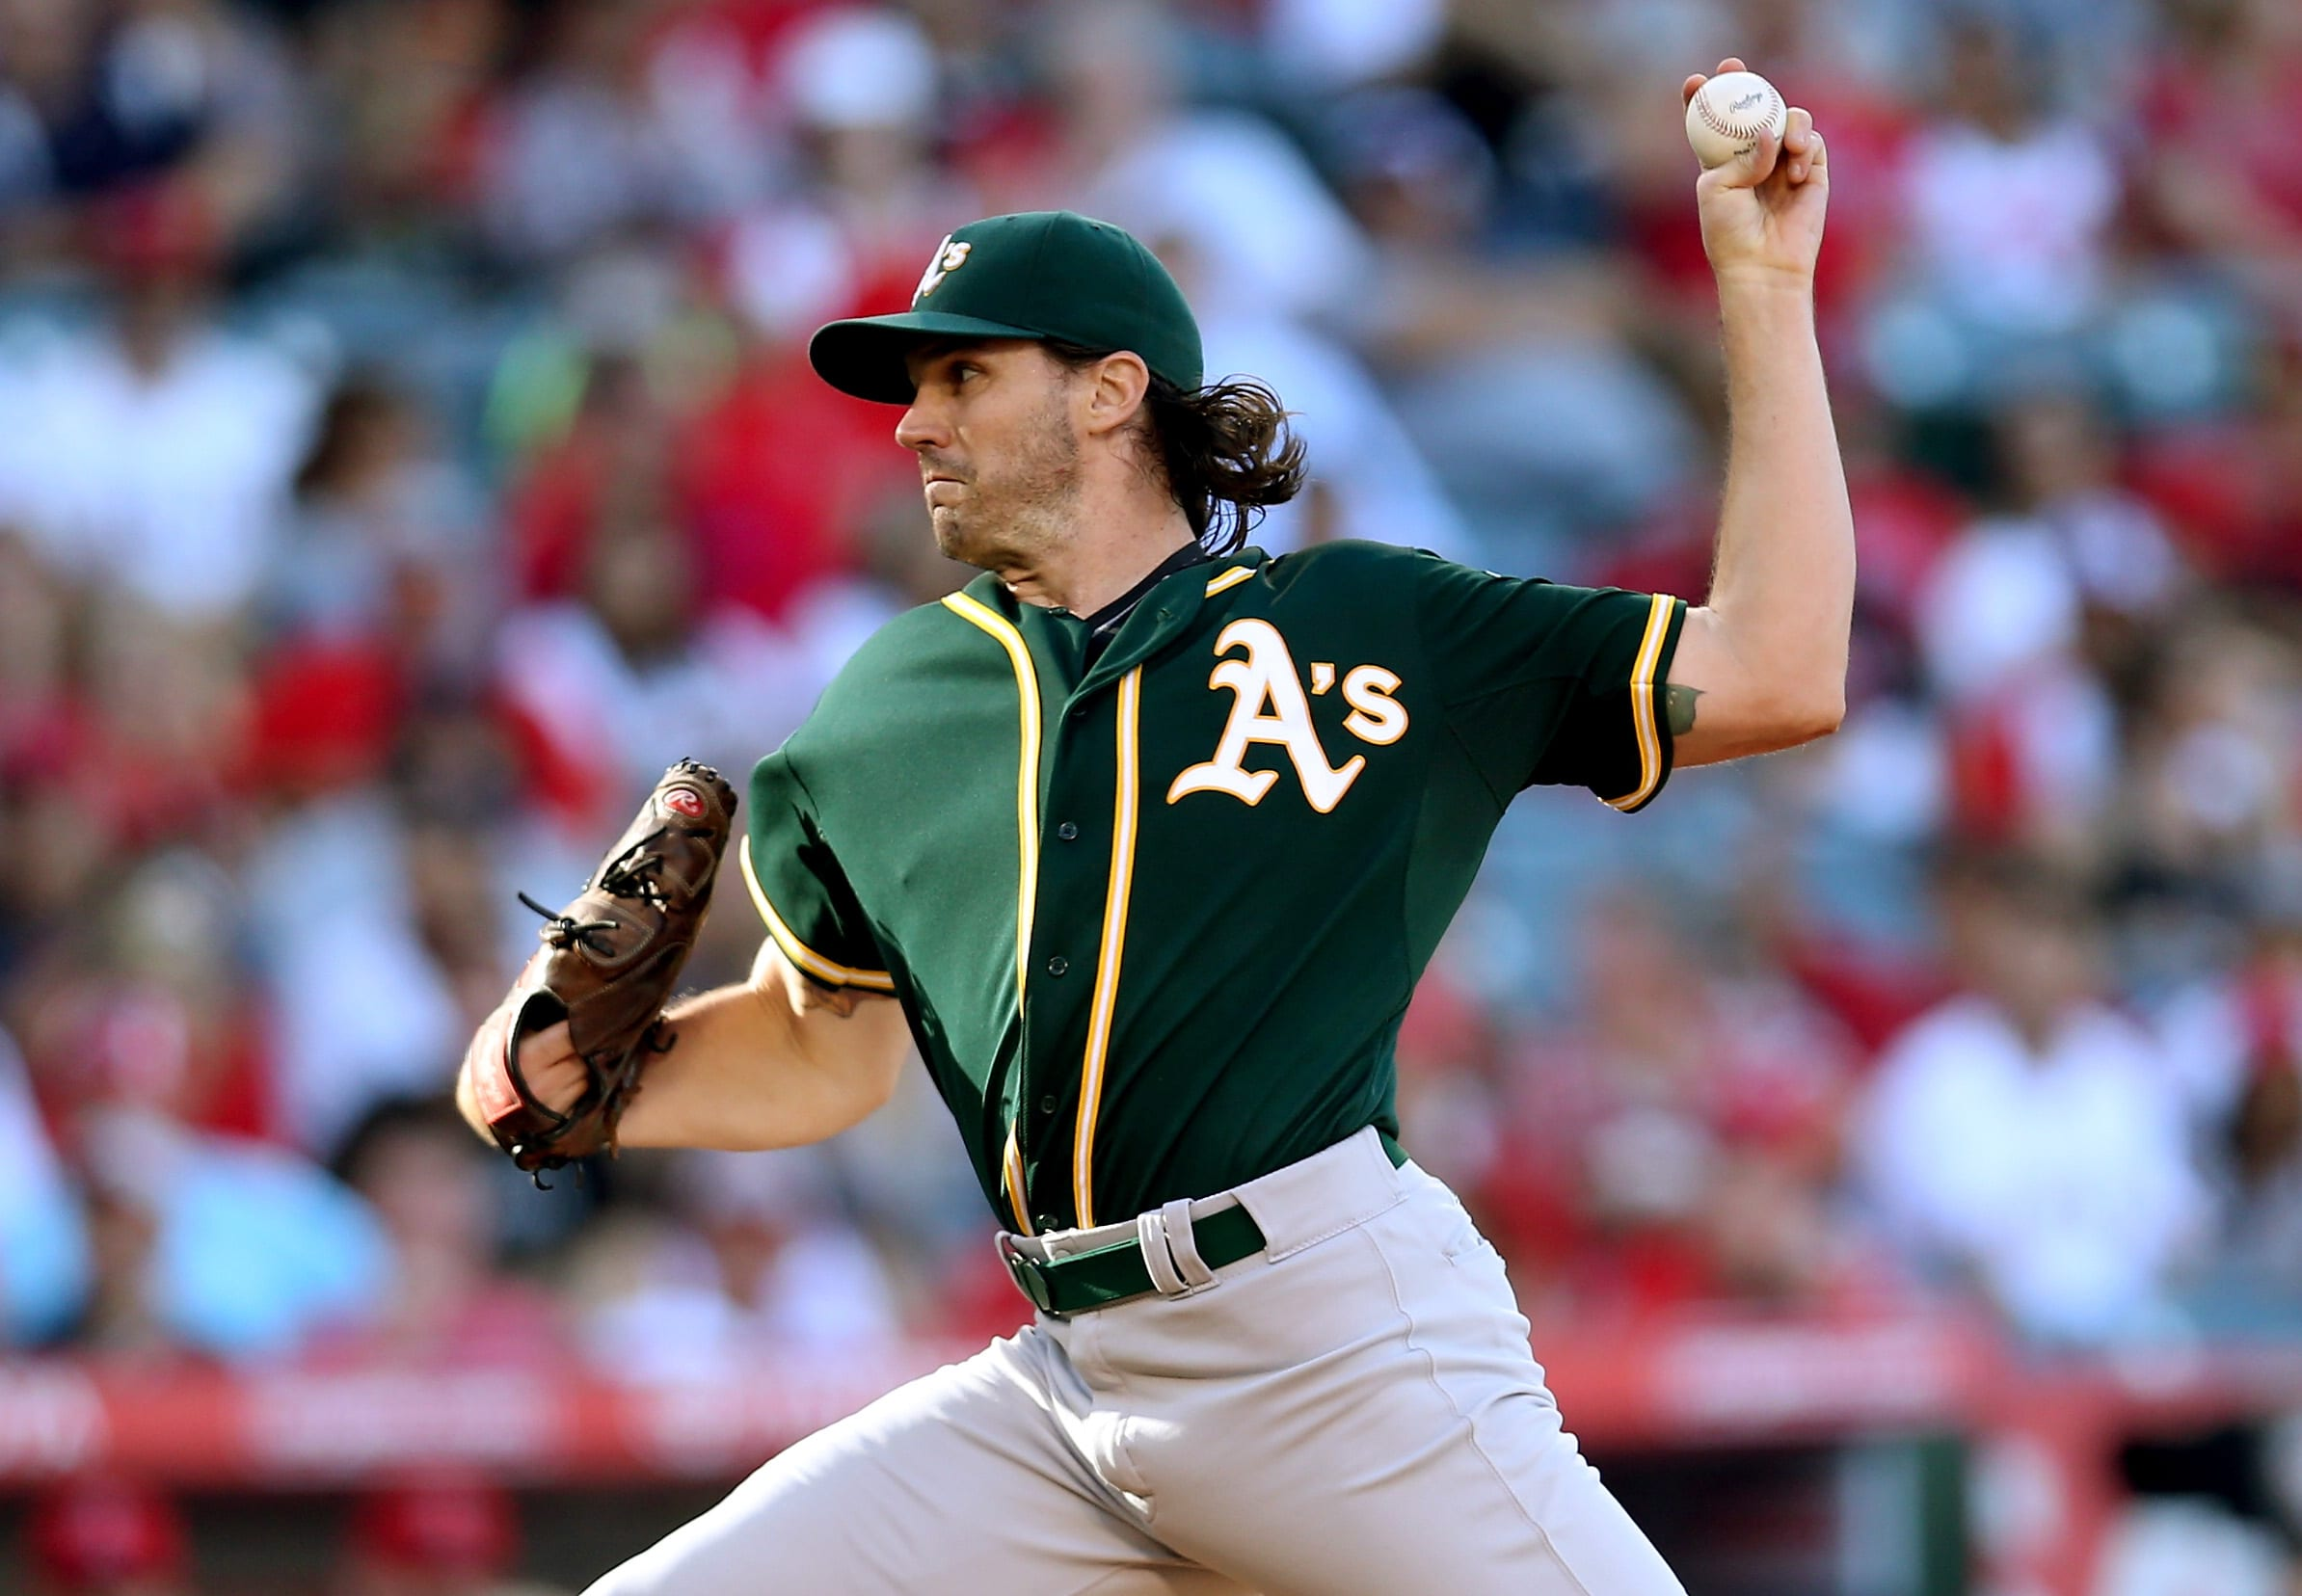 ANAHEIM, CA - SEPTEMBER 30:  Barry Zito #75 of the Oakland Athletics throws a pitch against the Los Angeles Angels of Anaheim at Angel Stadium of Anaheim on September 30, 2015 in Anaheim, California.  (Photo by Stephen Dunn/Getty Images)